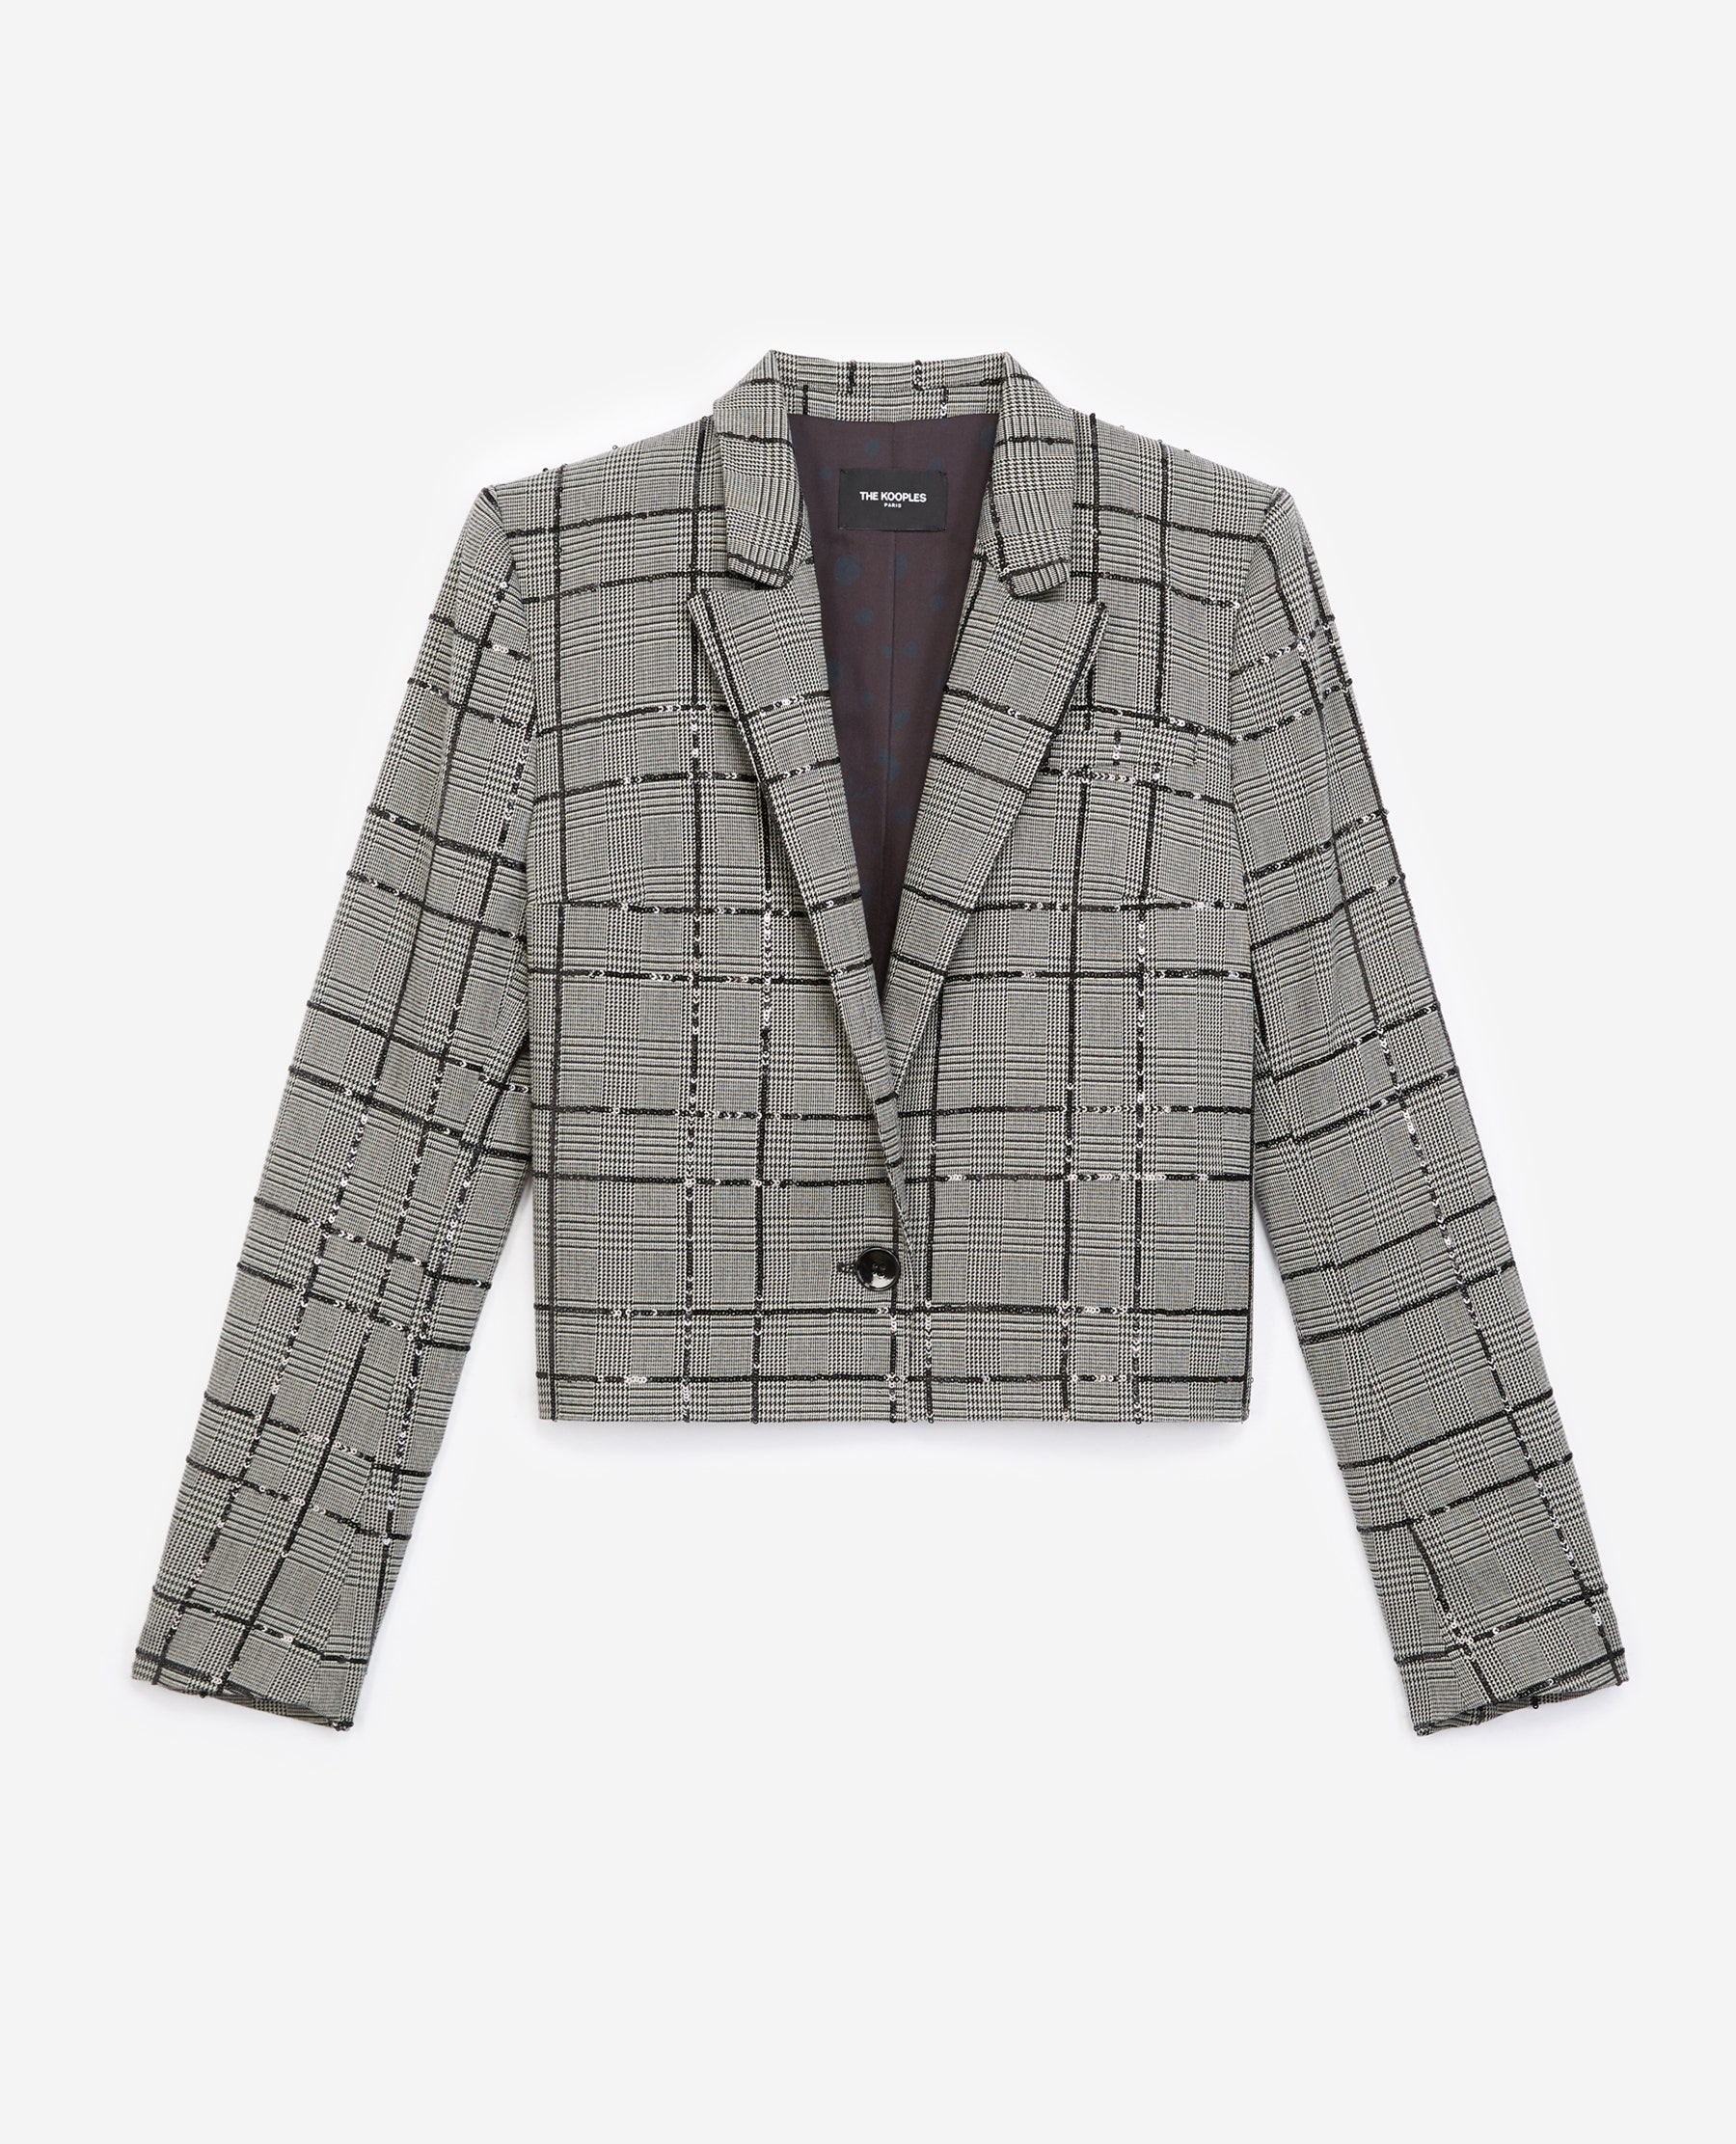 The Kooples - Grey suit jacket with check motif and sequins - WOMEN